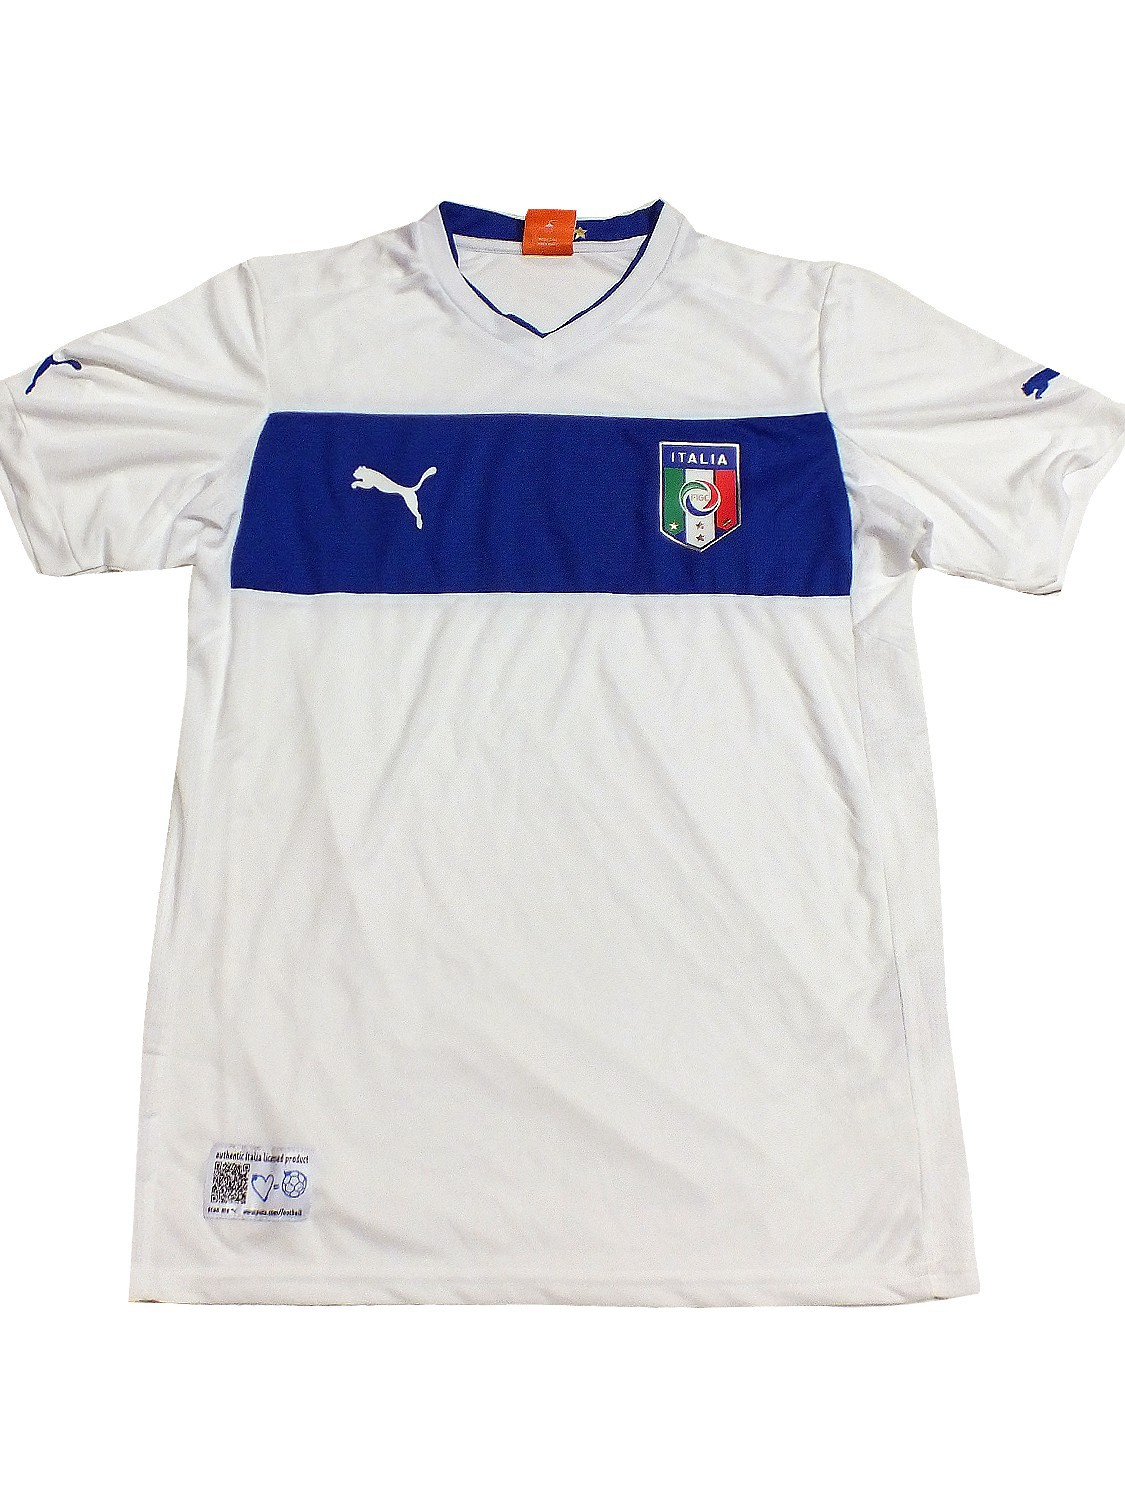 Italia Kids Away Shirt Replica Italien Trikot weiß 740361 02